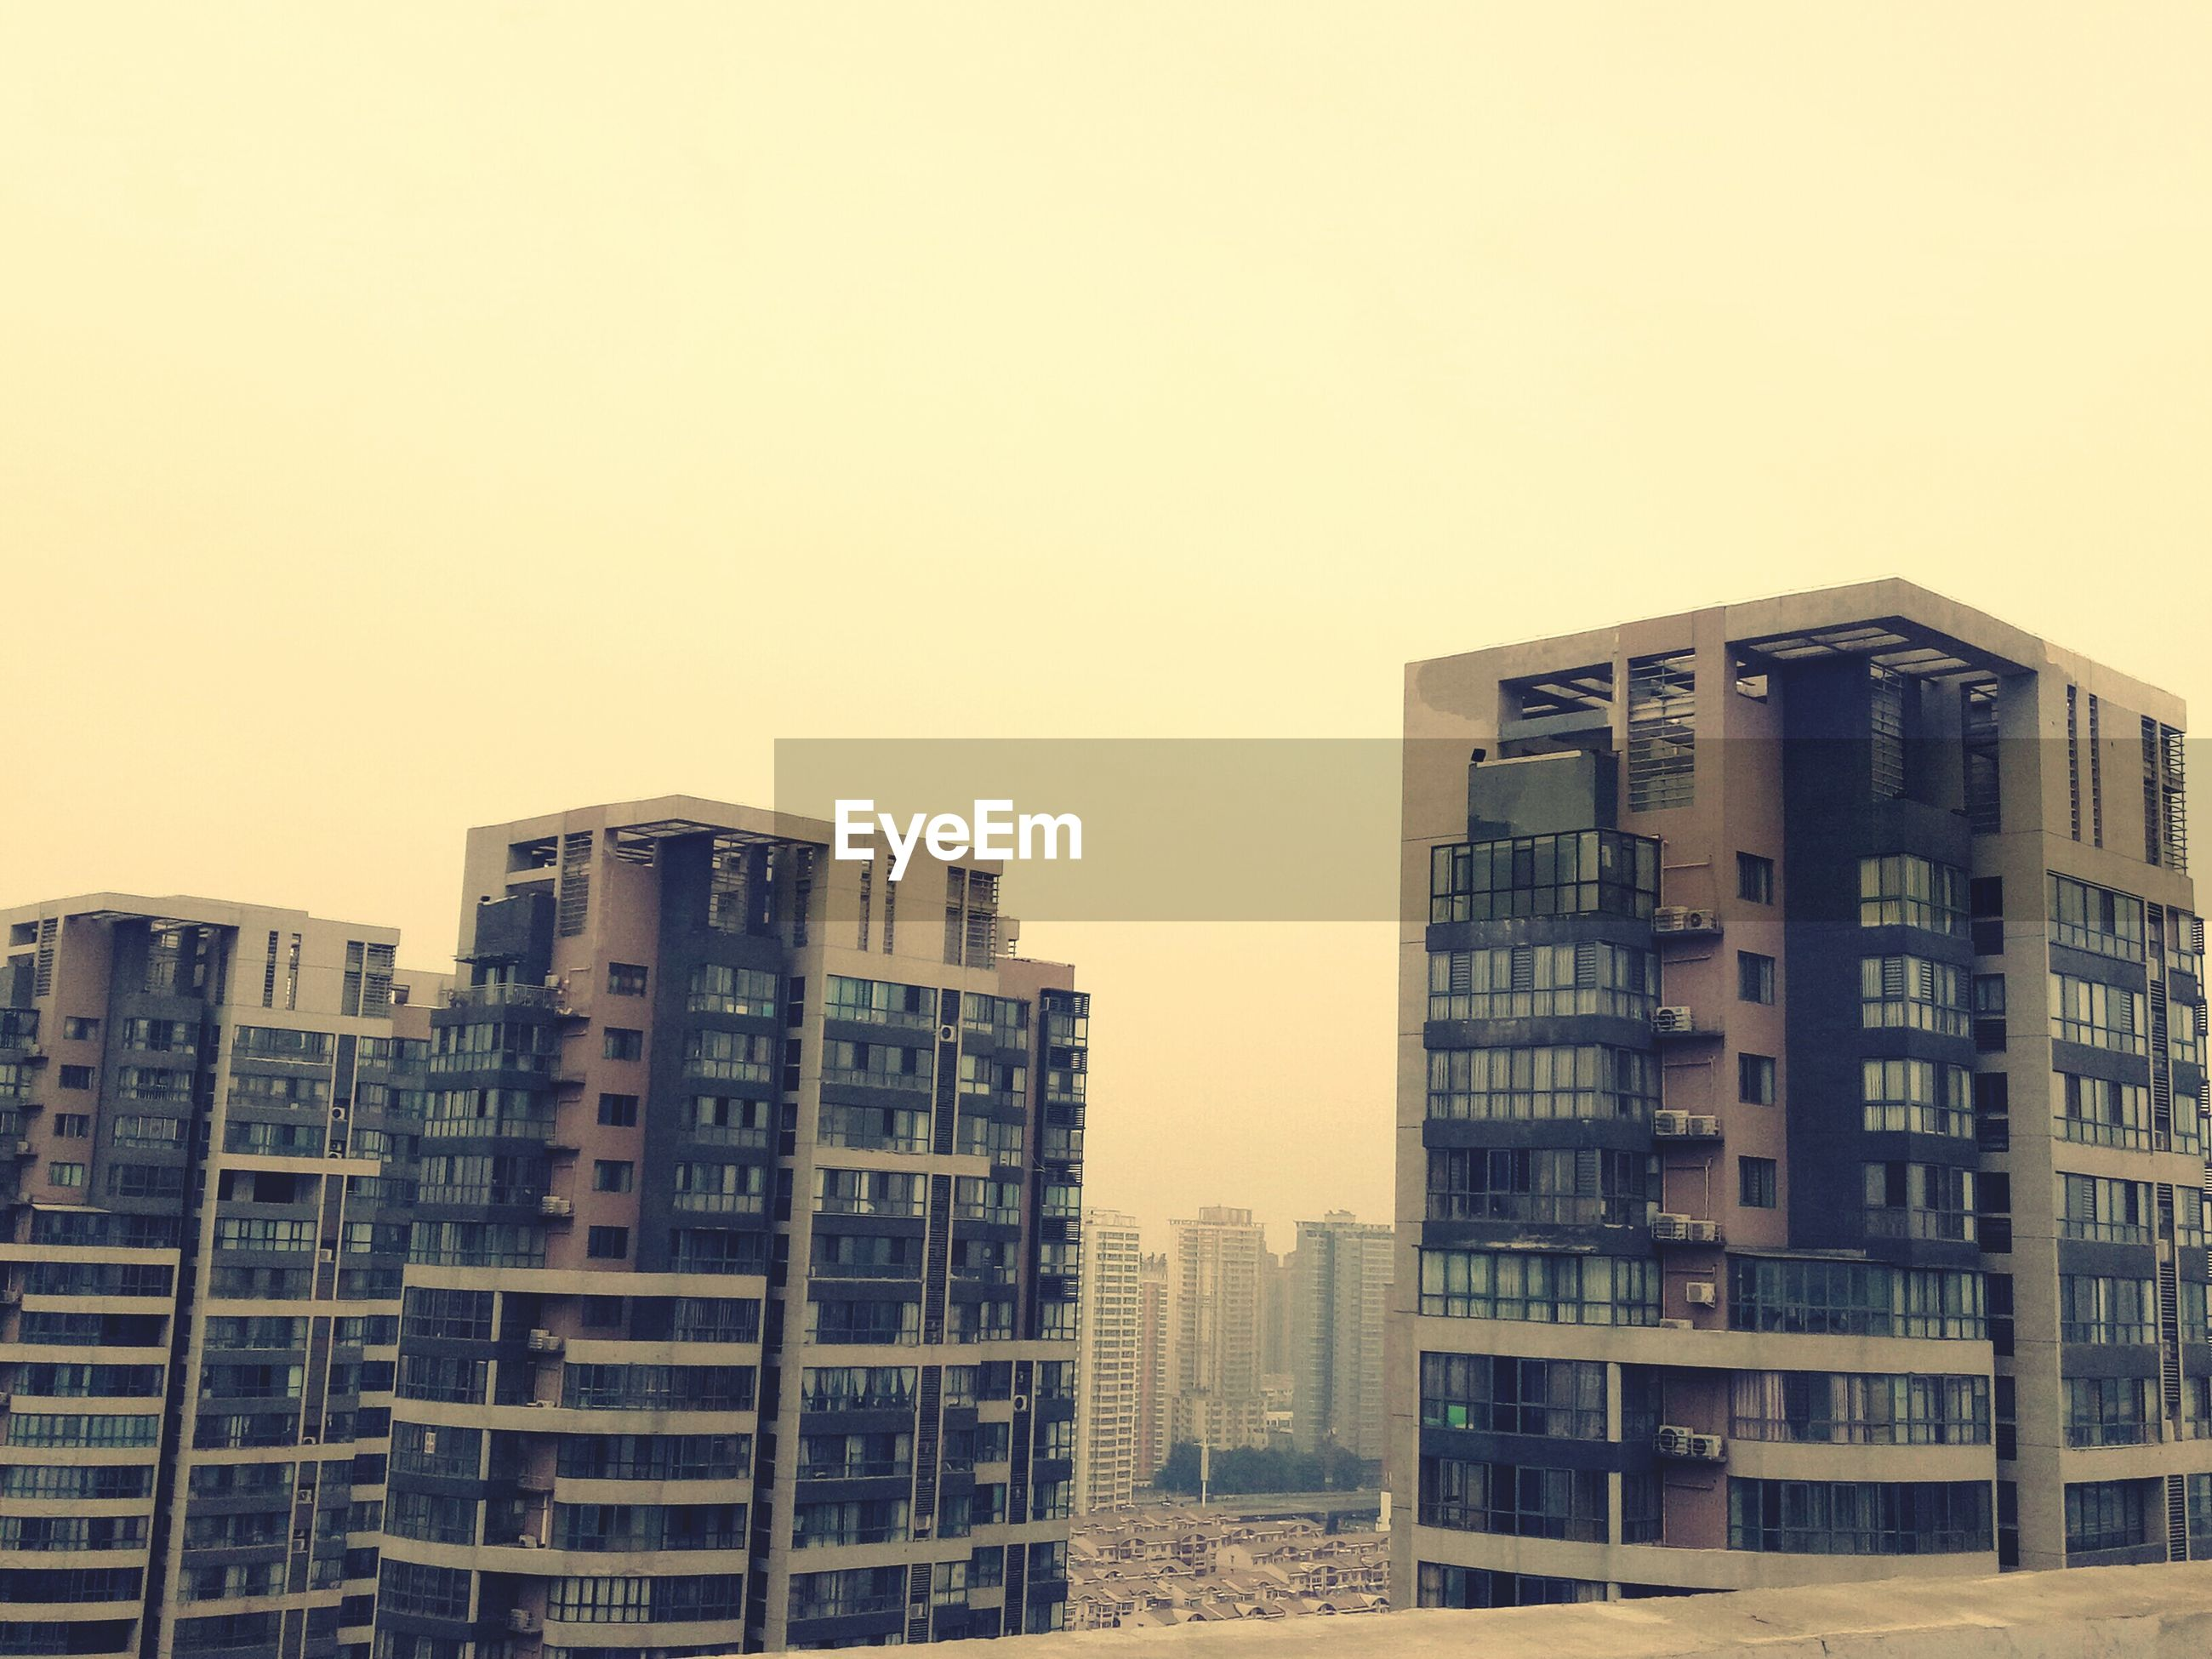 clear sky, architecture, sunset, building exterior, city, no people, residential, outdoors, sky, day